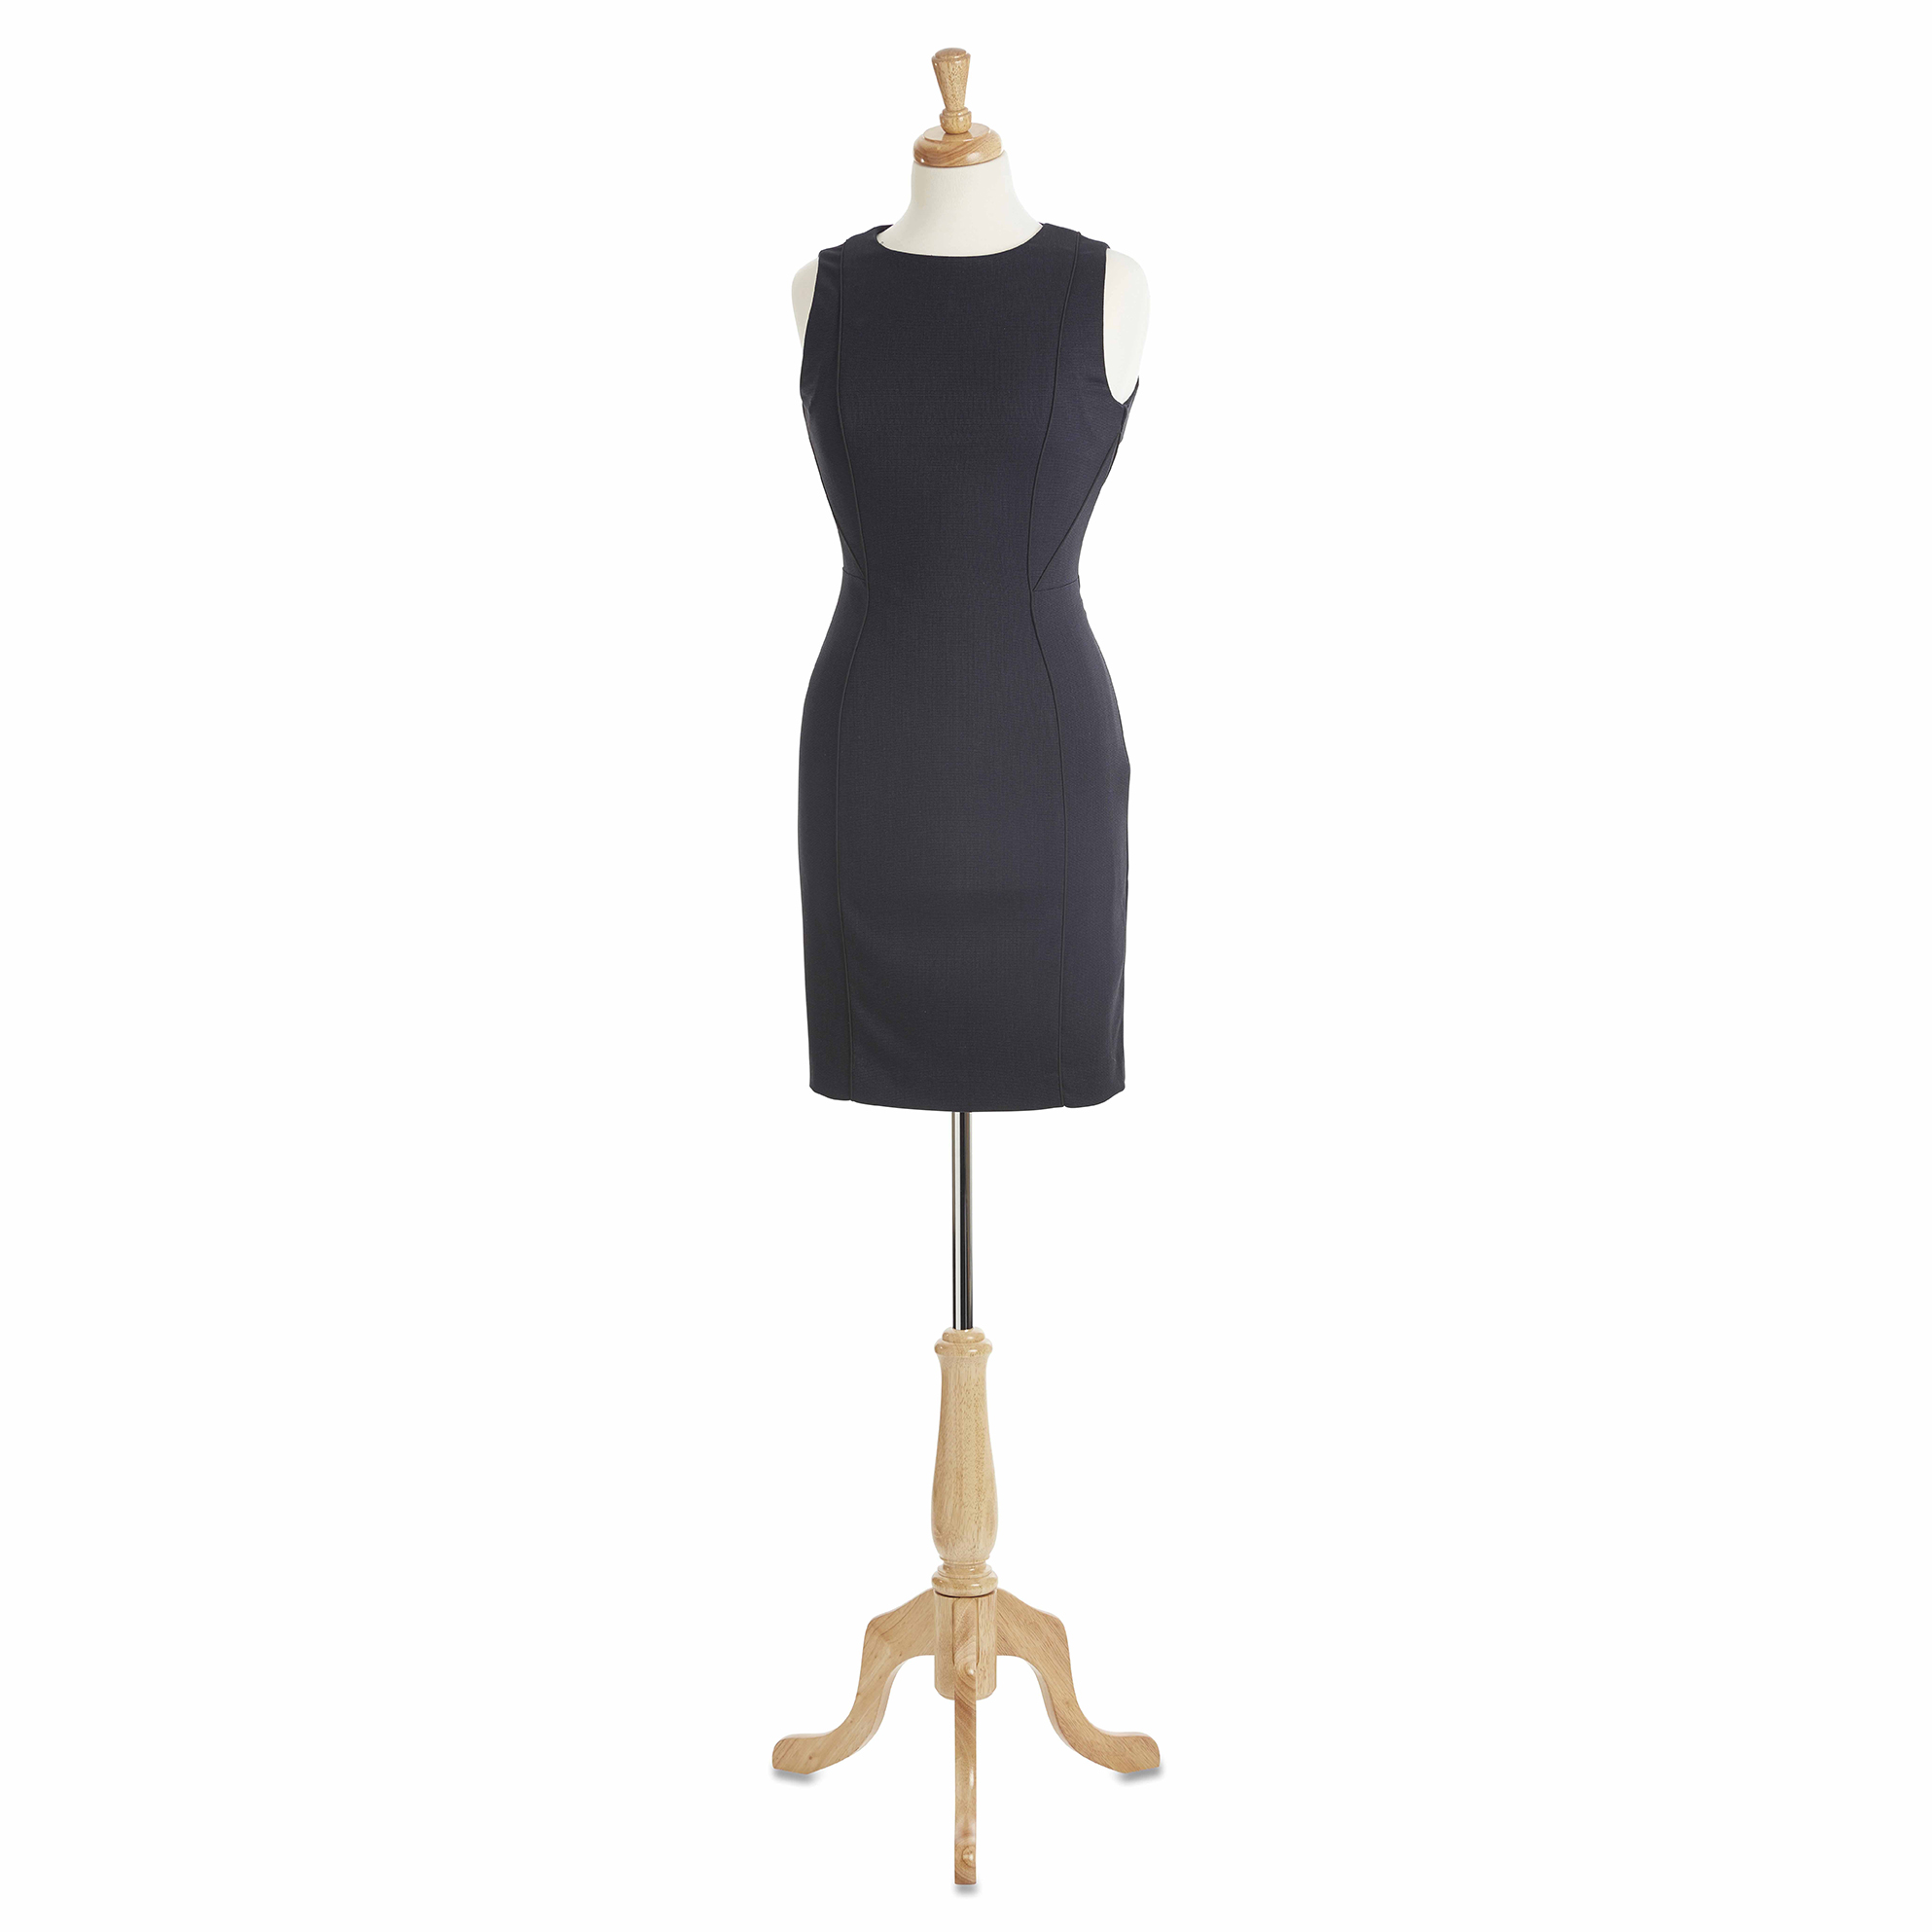 traditional wooden full length taylor dummy womens female mannequin packshot photography cut out clipping path white background product photography ecommerce photography still life drop shadow table top photography reflection.jpg